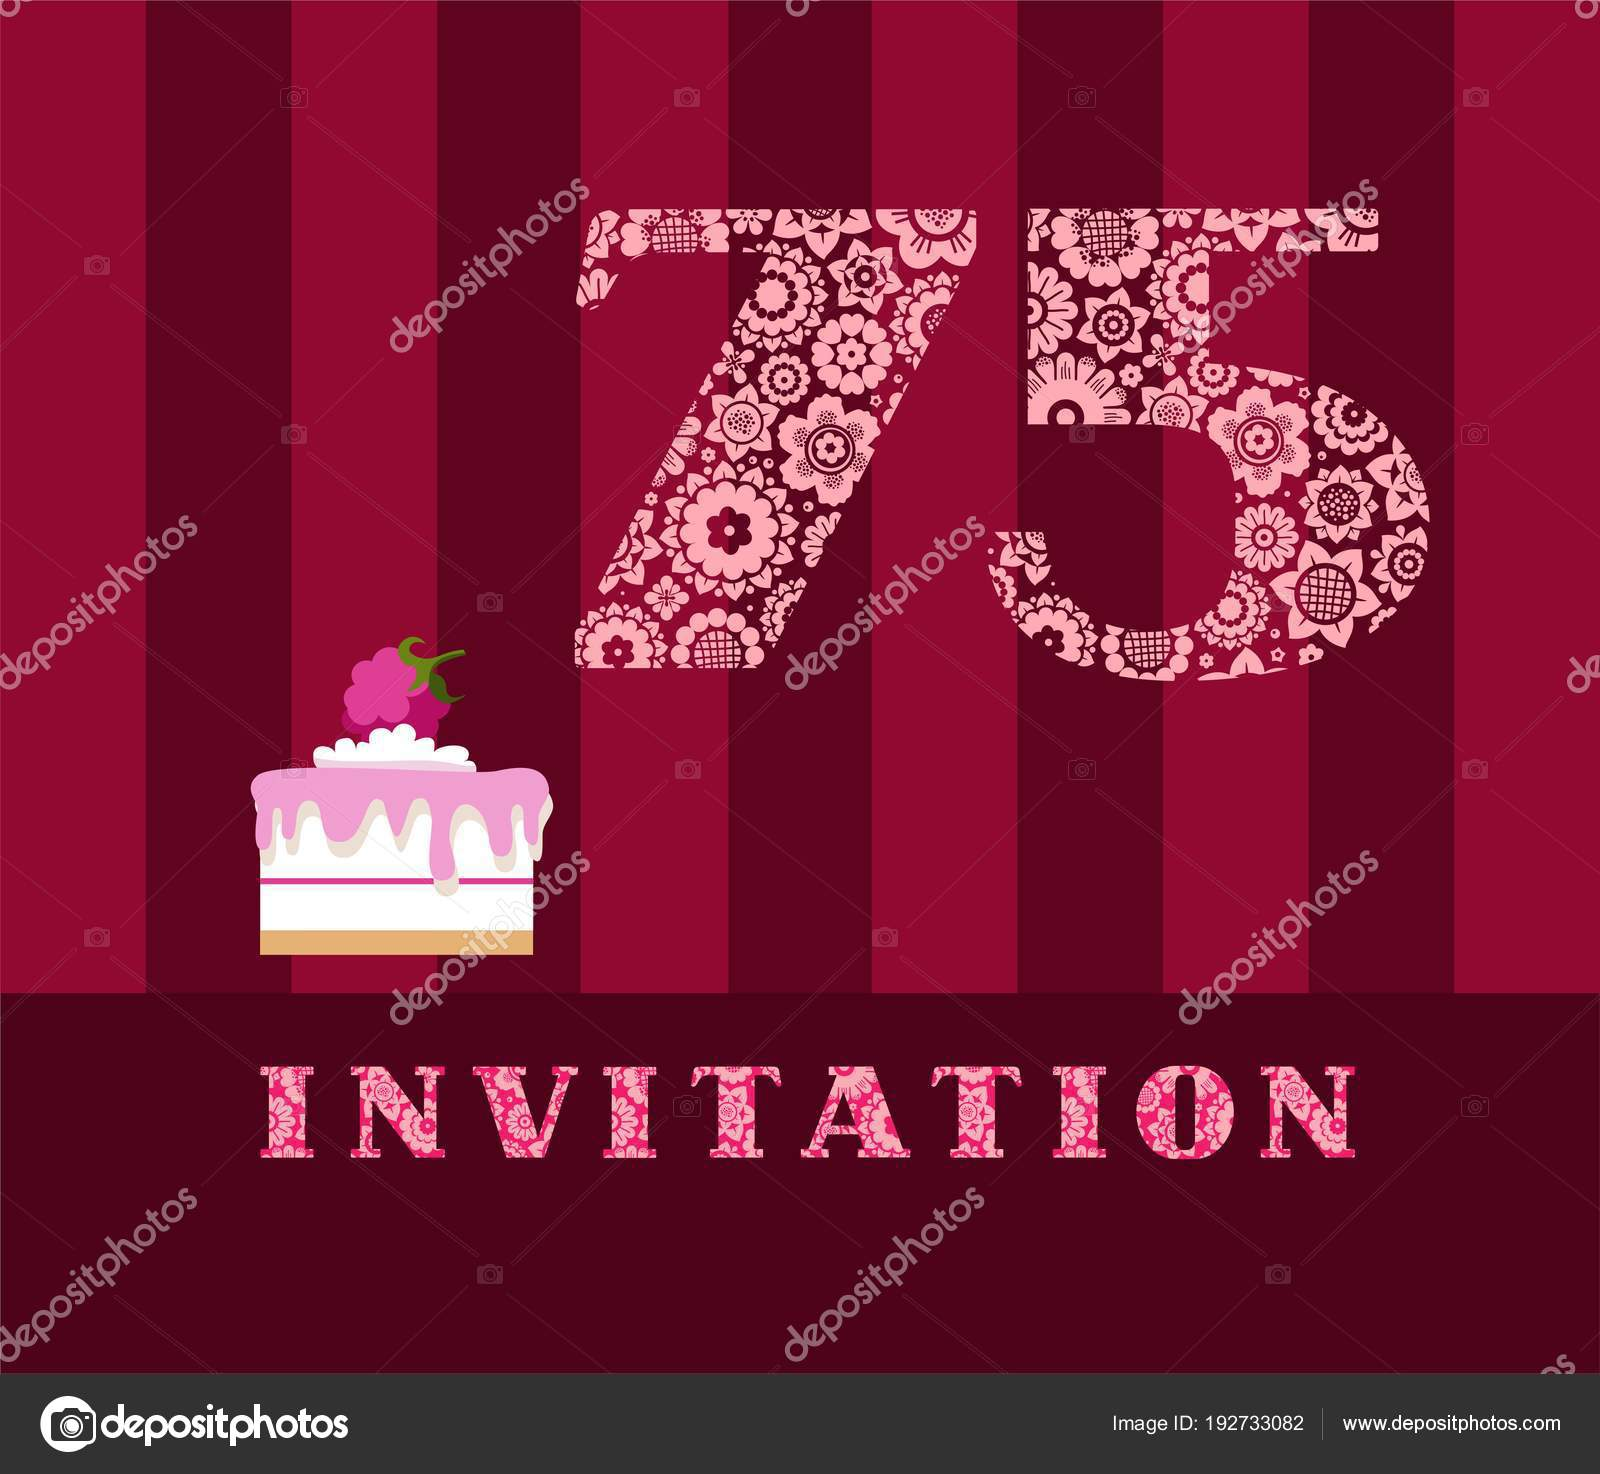 Invitation years old raspberry pie vector english invitation invitation years old raspberry pie vector english invitation birthday party stock vector stopboris Images